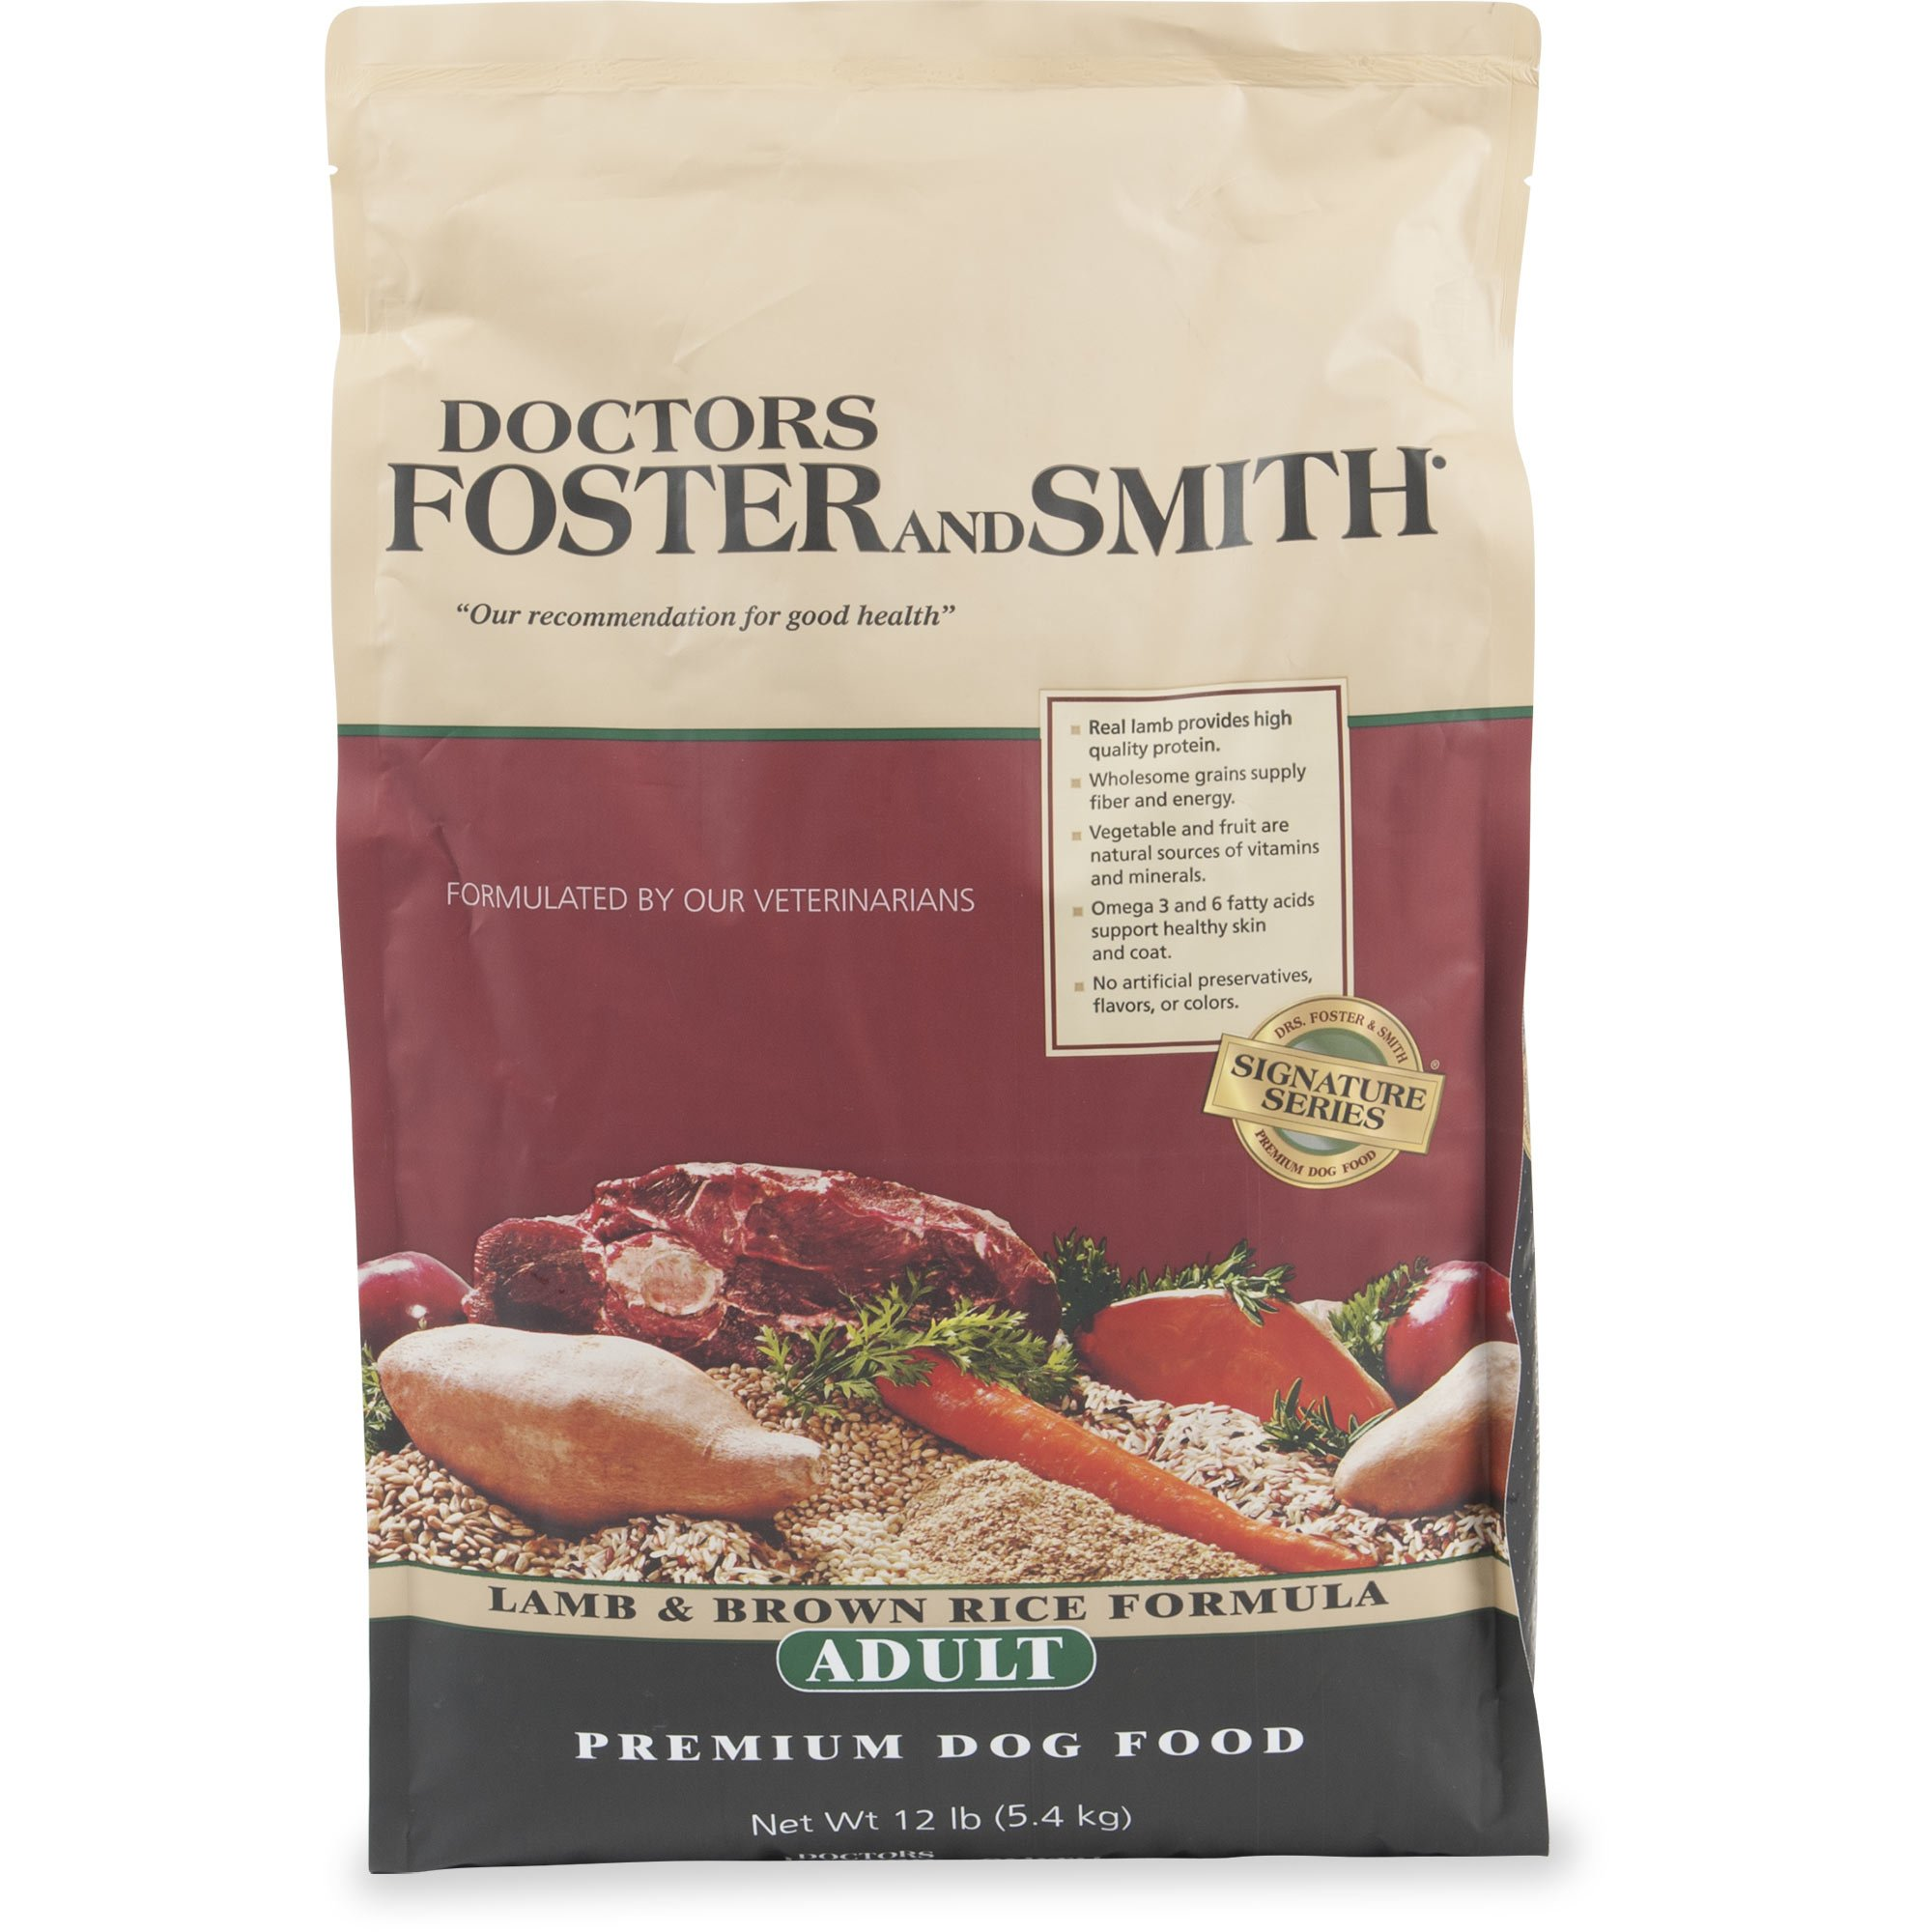 Drs. Foster and Smith Signature Series Lamb & Brown Rice Formula Adult Dry Dog Food, 12 lbs.